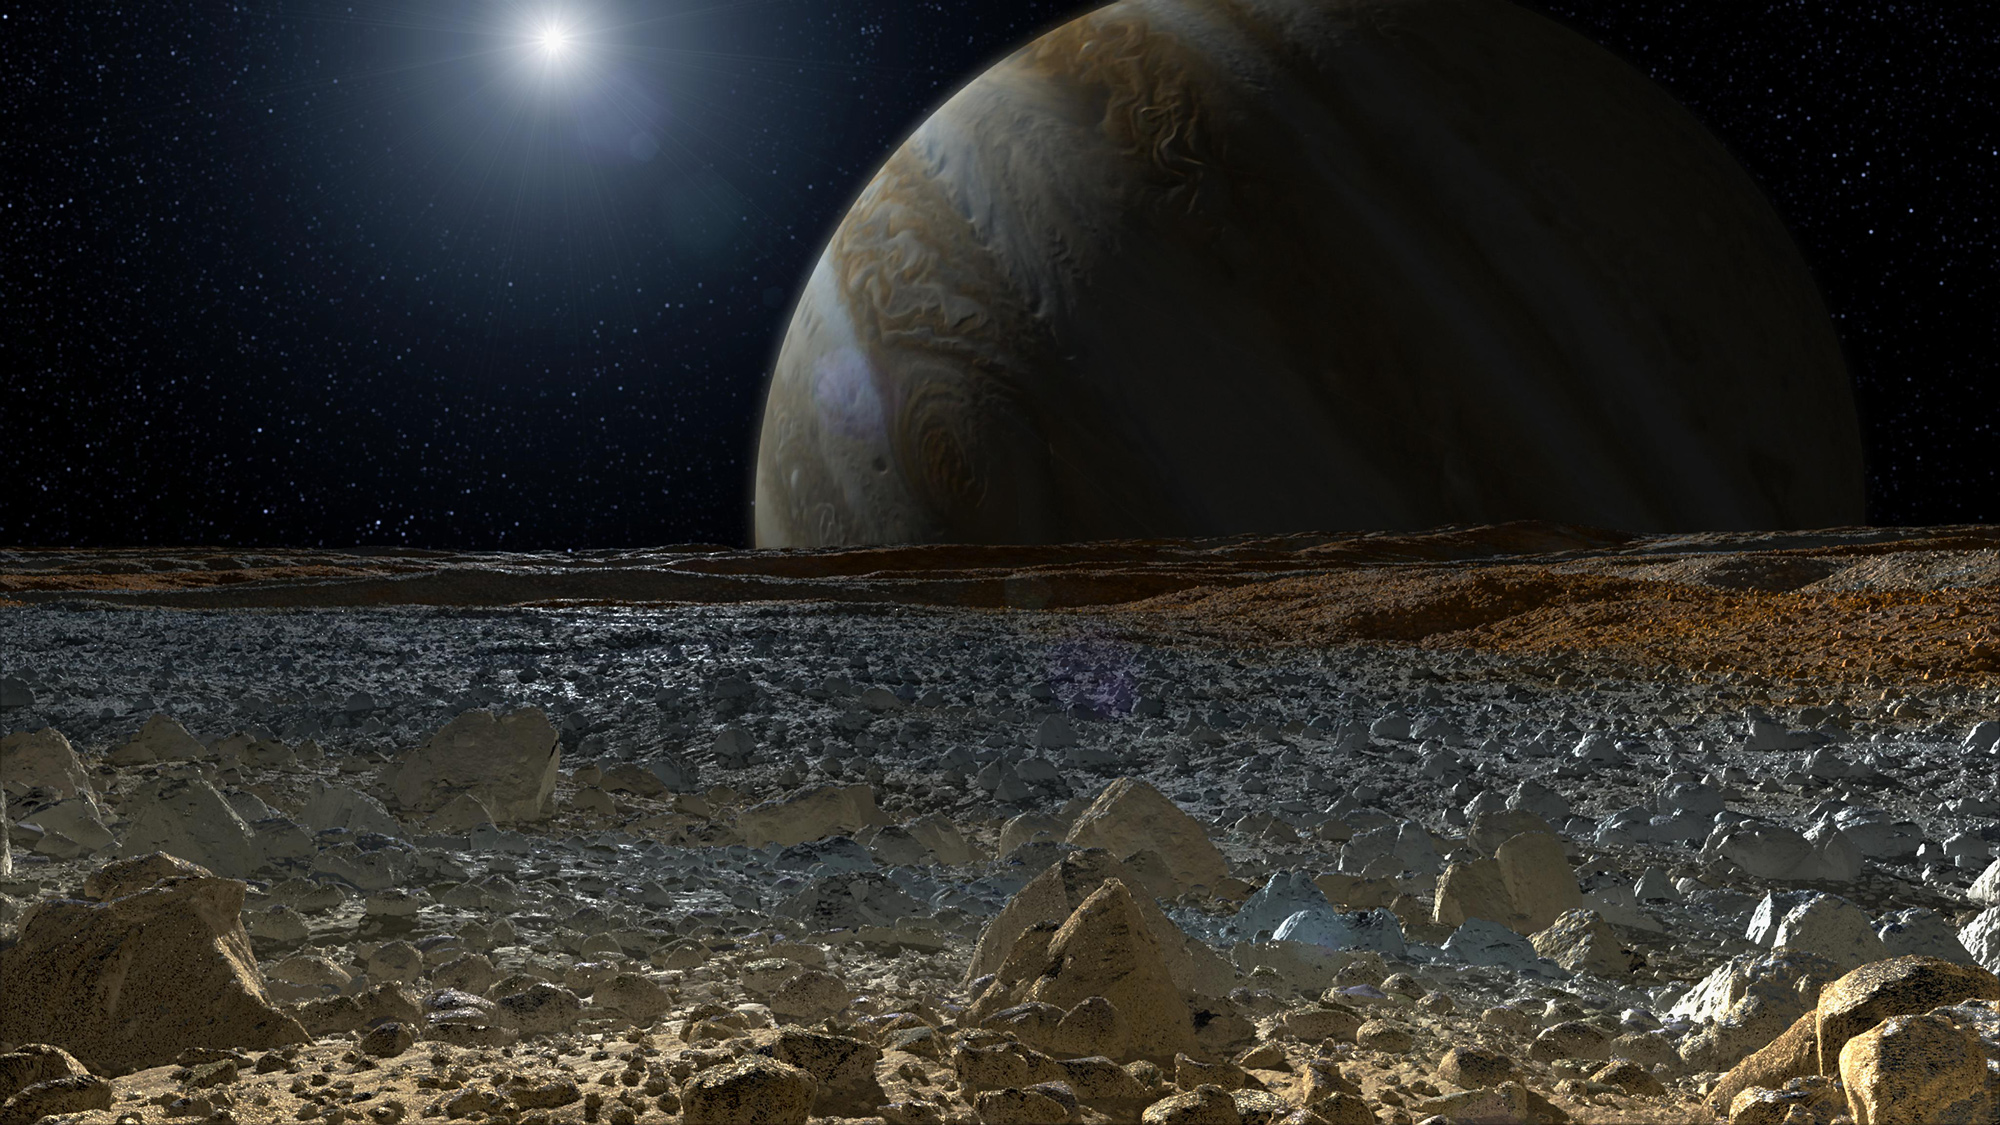 NASA's Europa Lander May Drill to Find Pristine Samples on Icy Moon